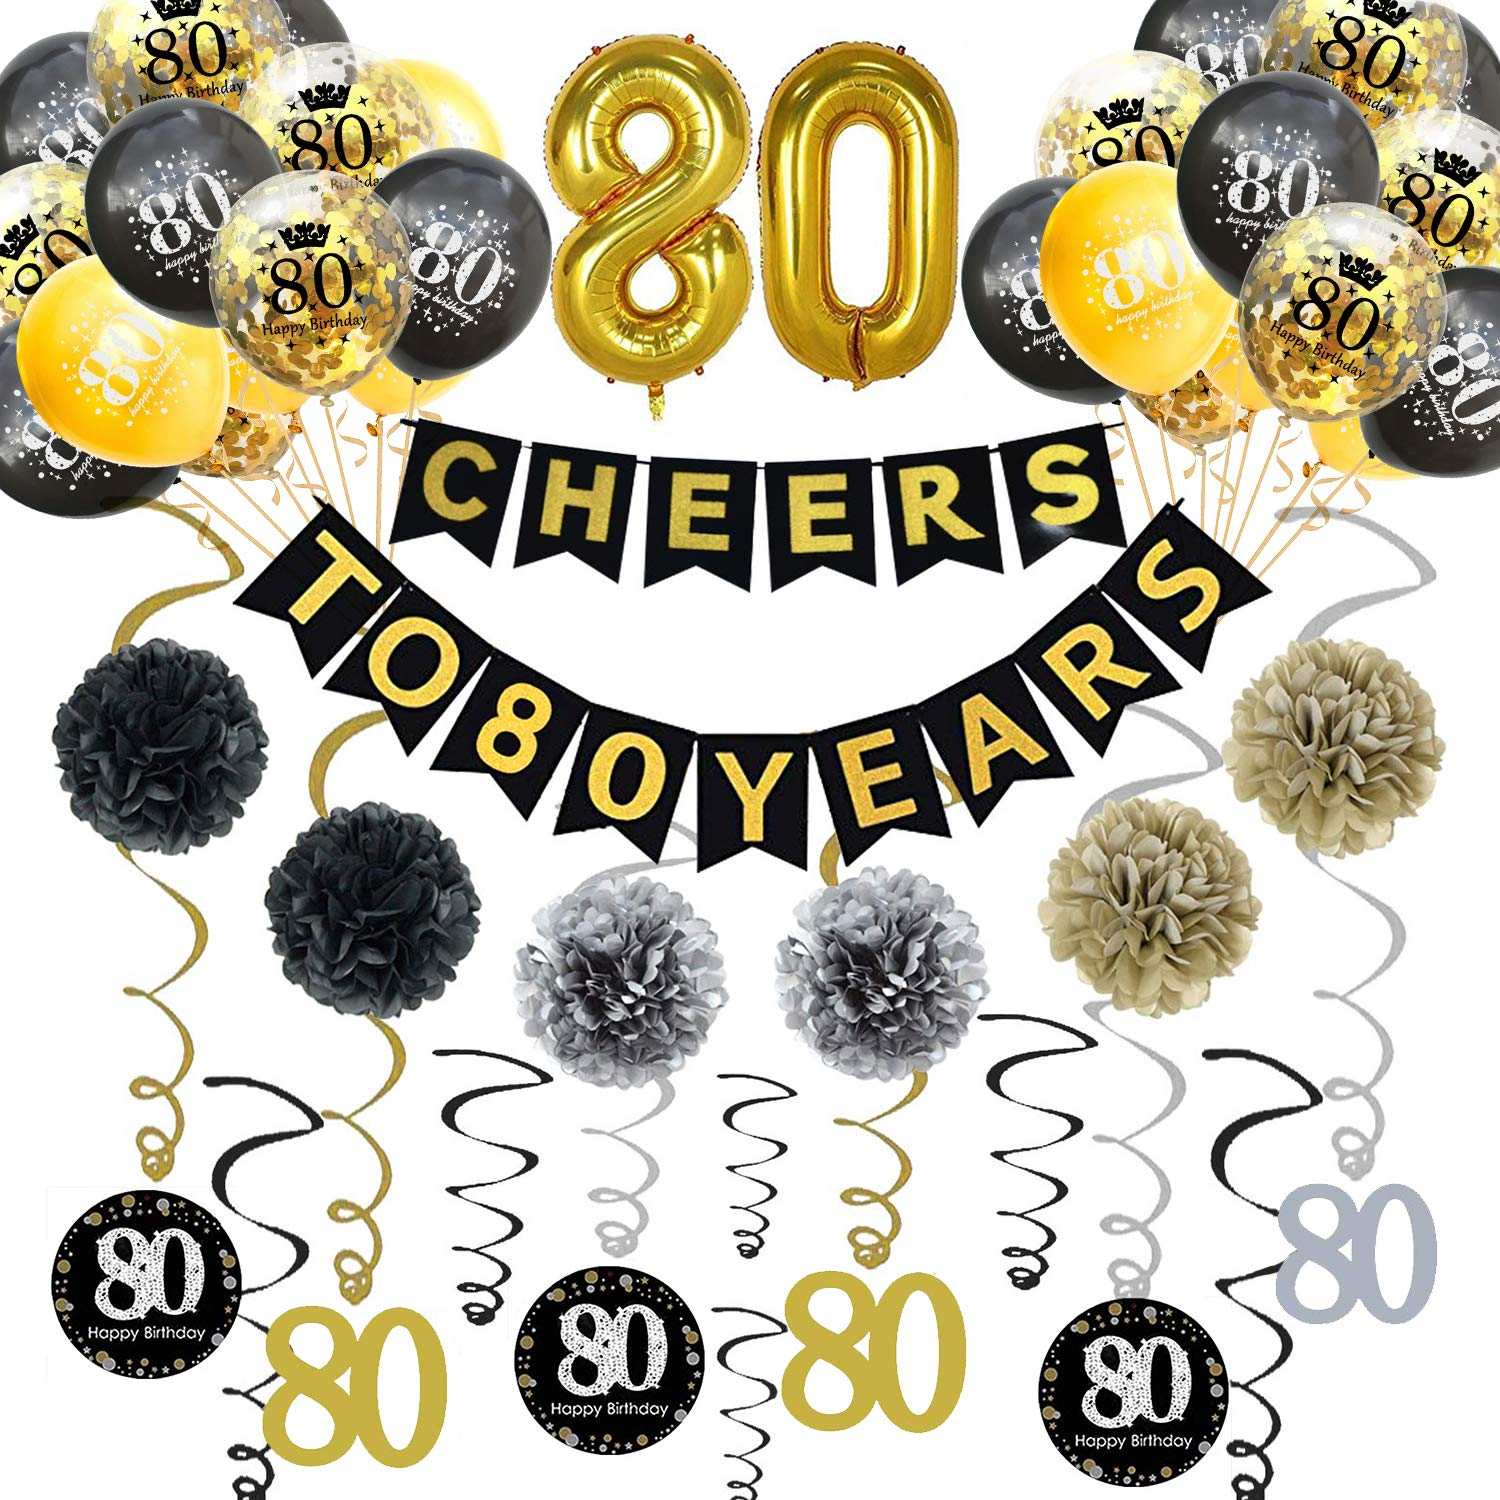 Trgowaul 8th Birthday Party Decorations Kit- Gold Glittery Cheers to 8  Years Banner, Poms, 8Pcs Sparkling 8 Hanging Swirl, 8 Gold Number Balloon